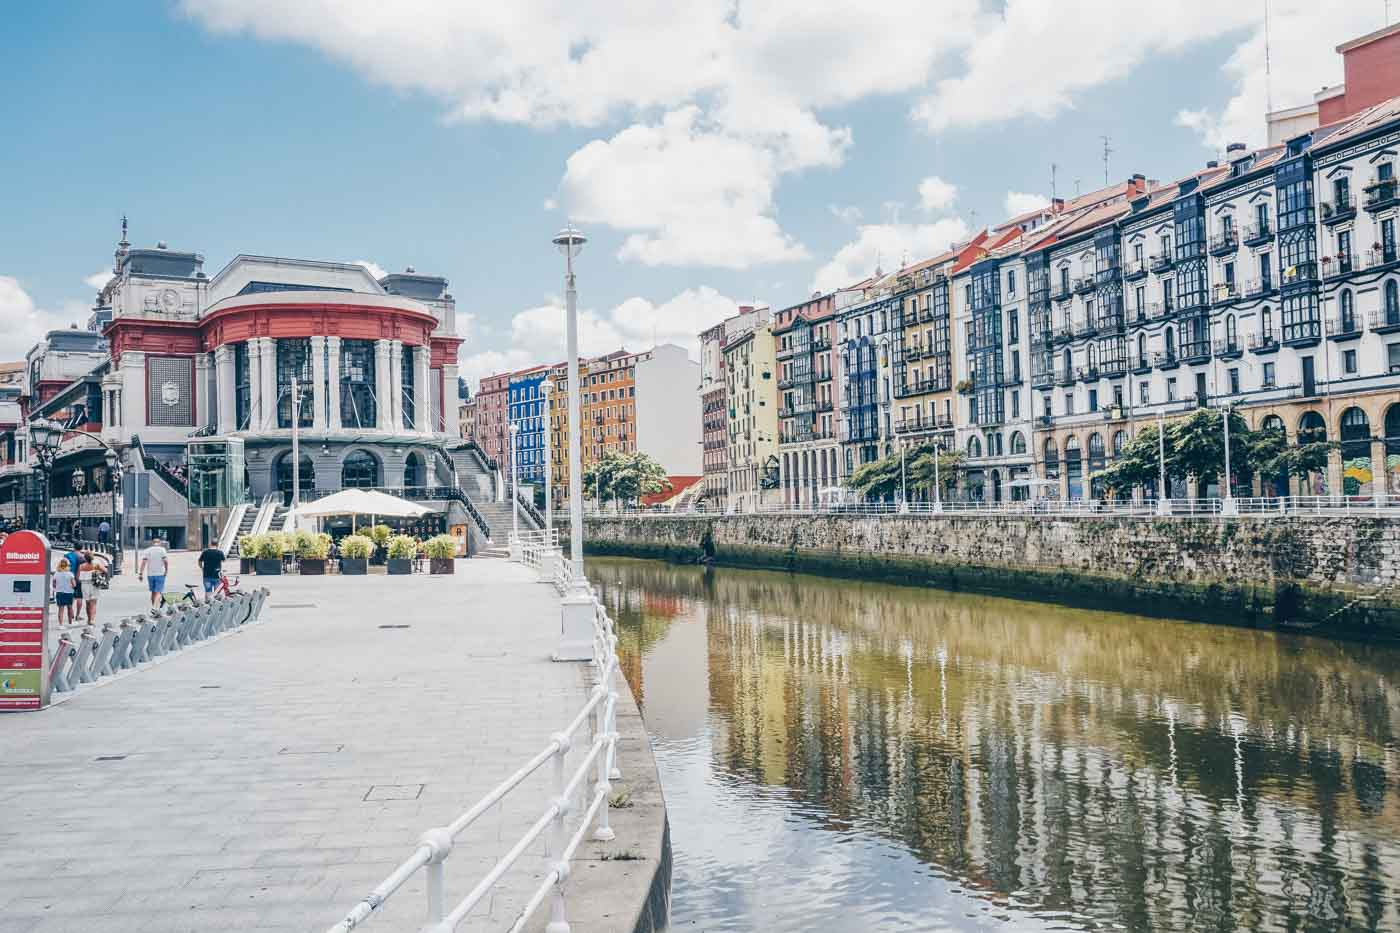 Bilbao and the Mercado de la Ribera